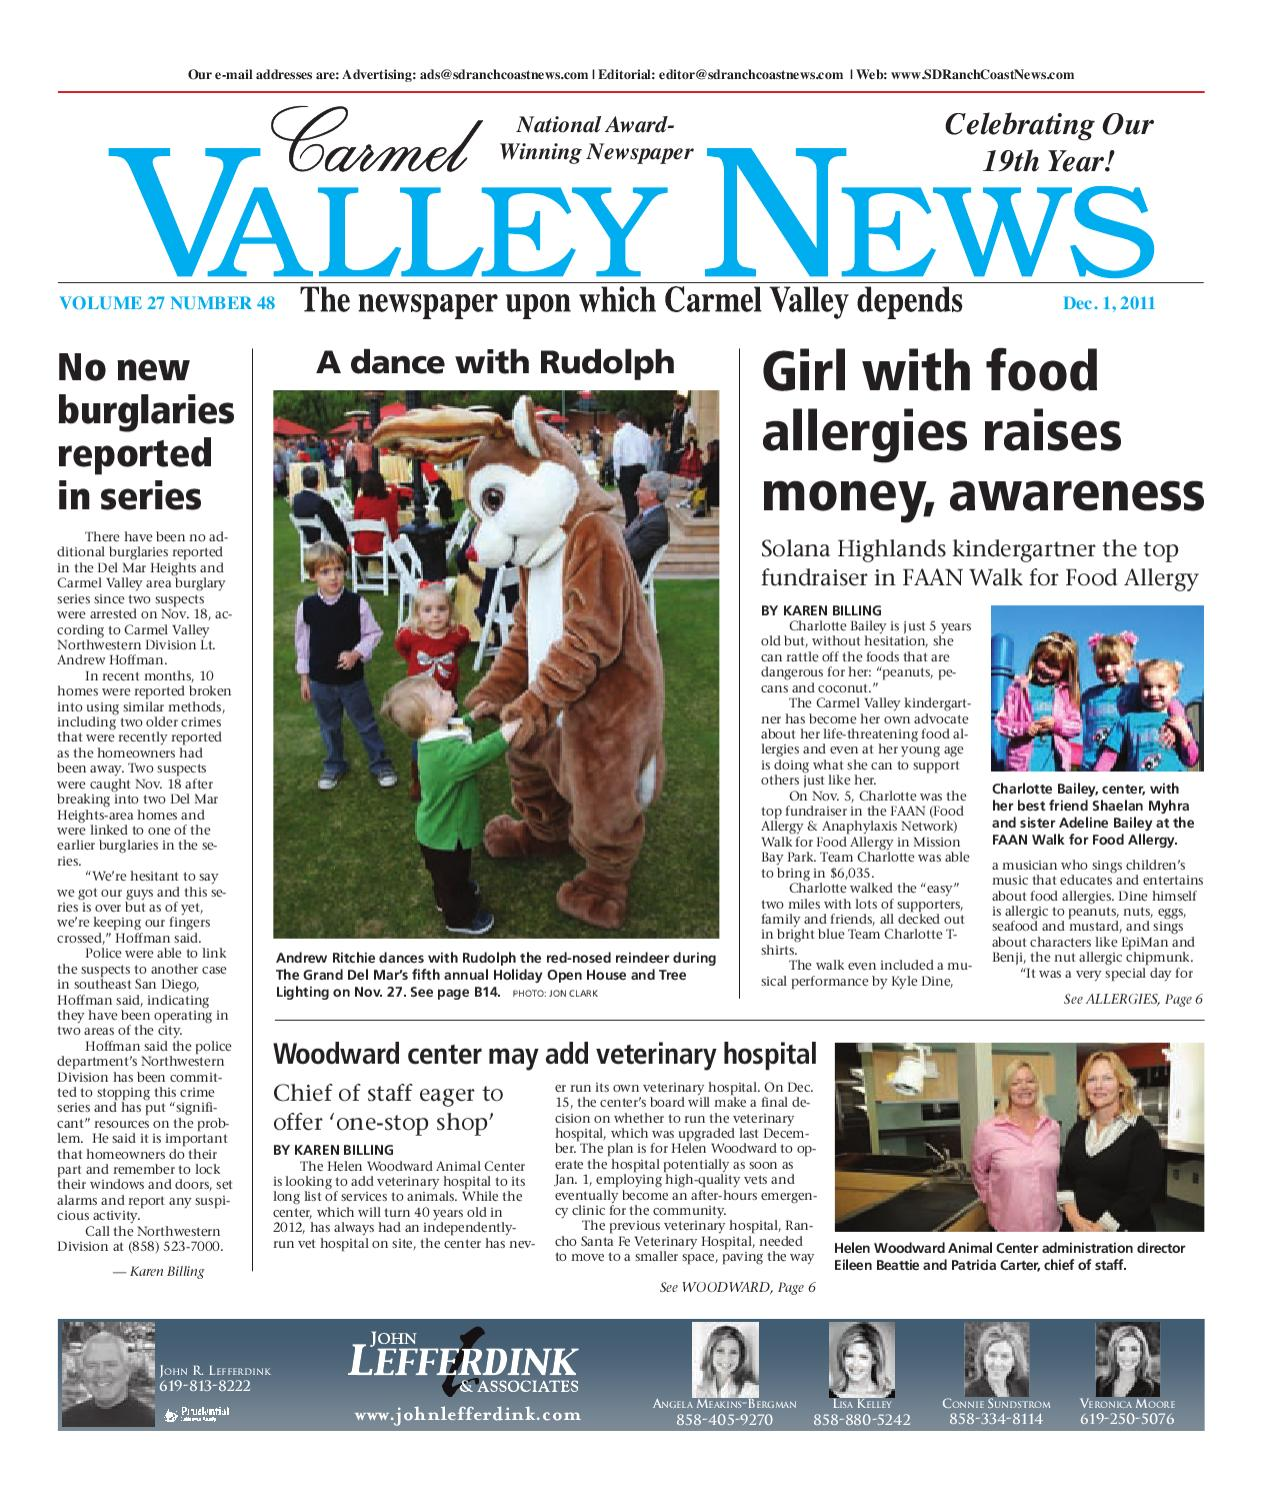 265f5a1769 12-1-2011 Carmel Valley News by MainStreet Media - issuu